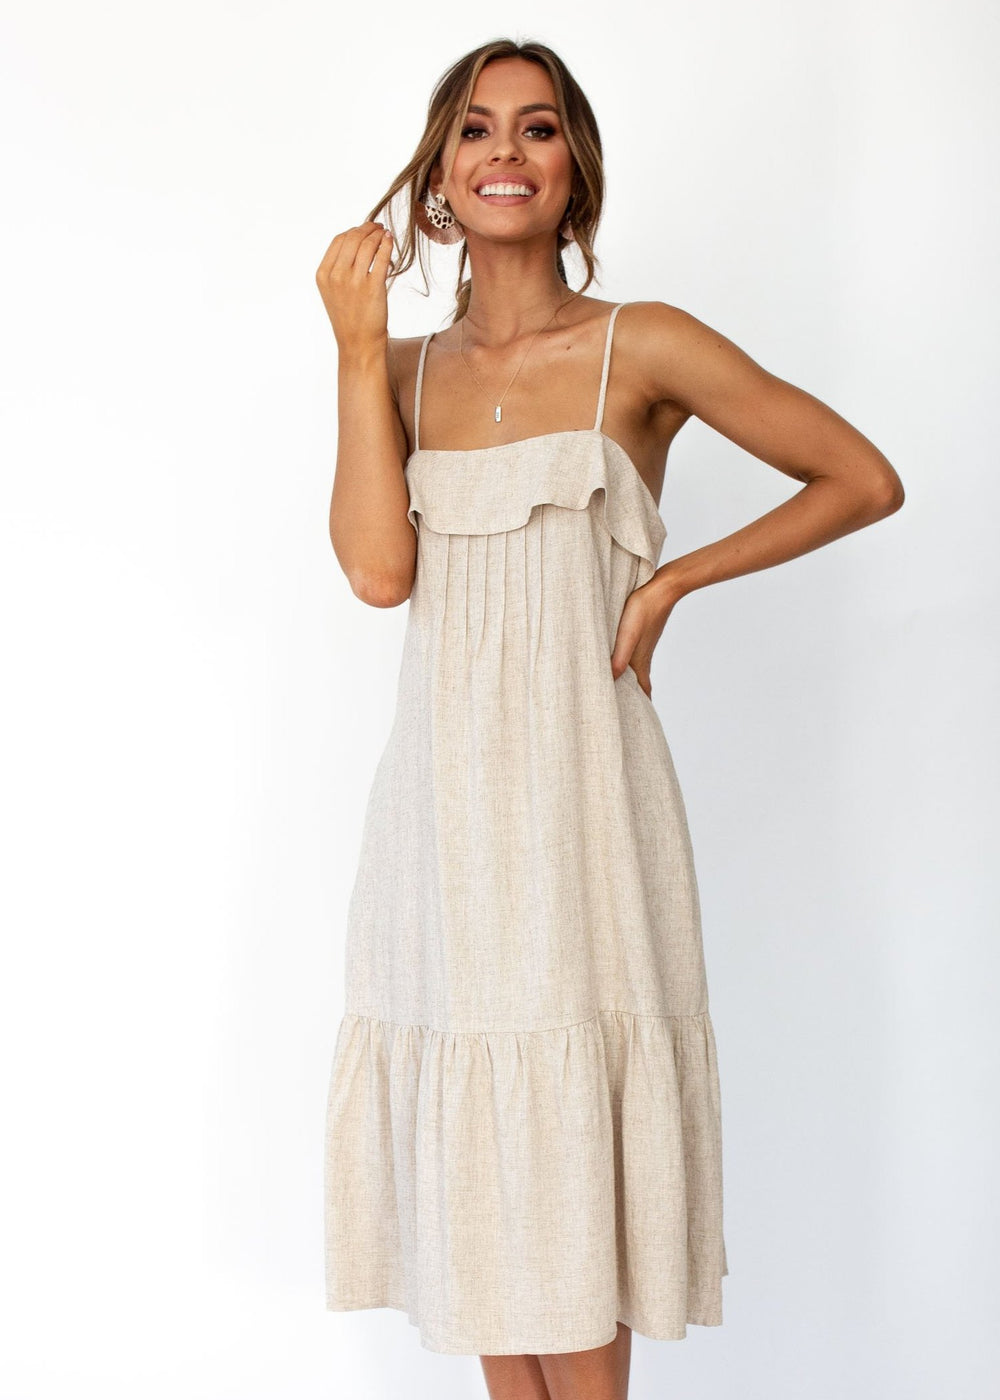 Women's Head In The Clouds Midi Dress - Natural